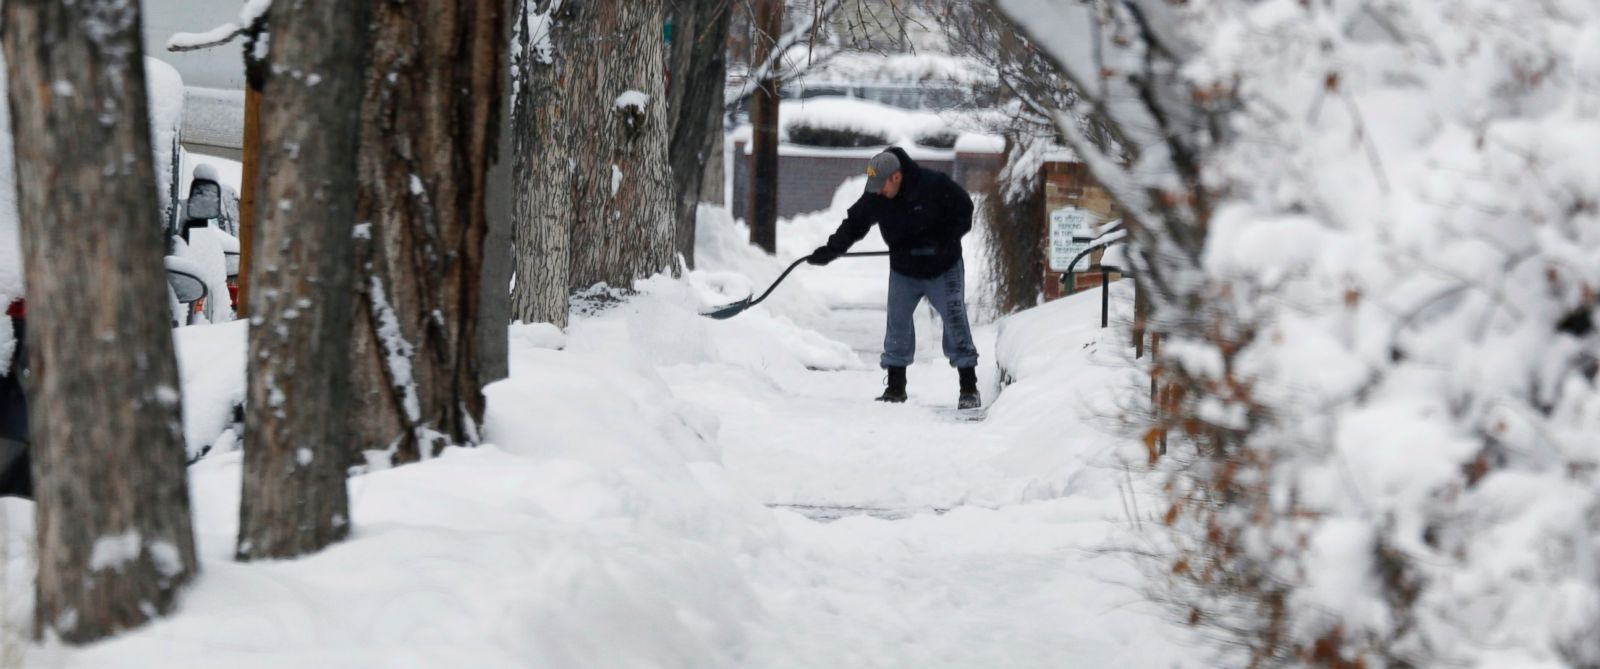 PHOTO: A shoveler toils on a sidewalk after a winter storm sent temperatures plunging to single-digit levels and dumped up to a foot of snow, Feb. 22, 2015, in Denver.